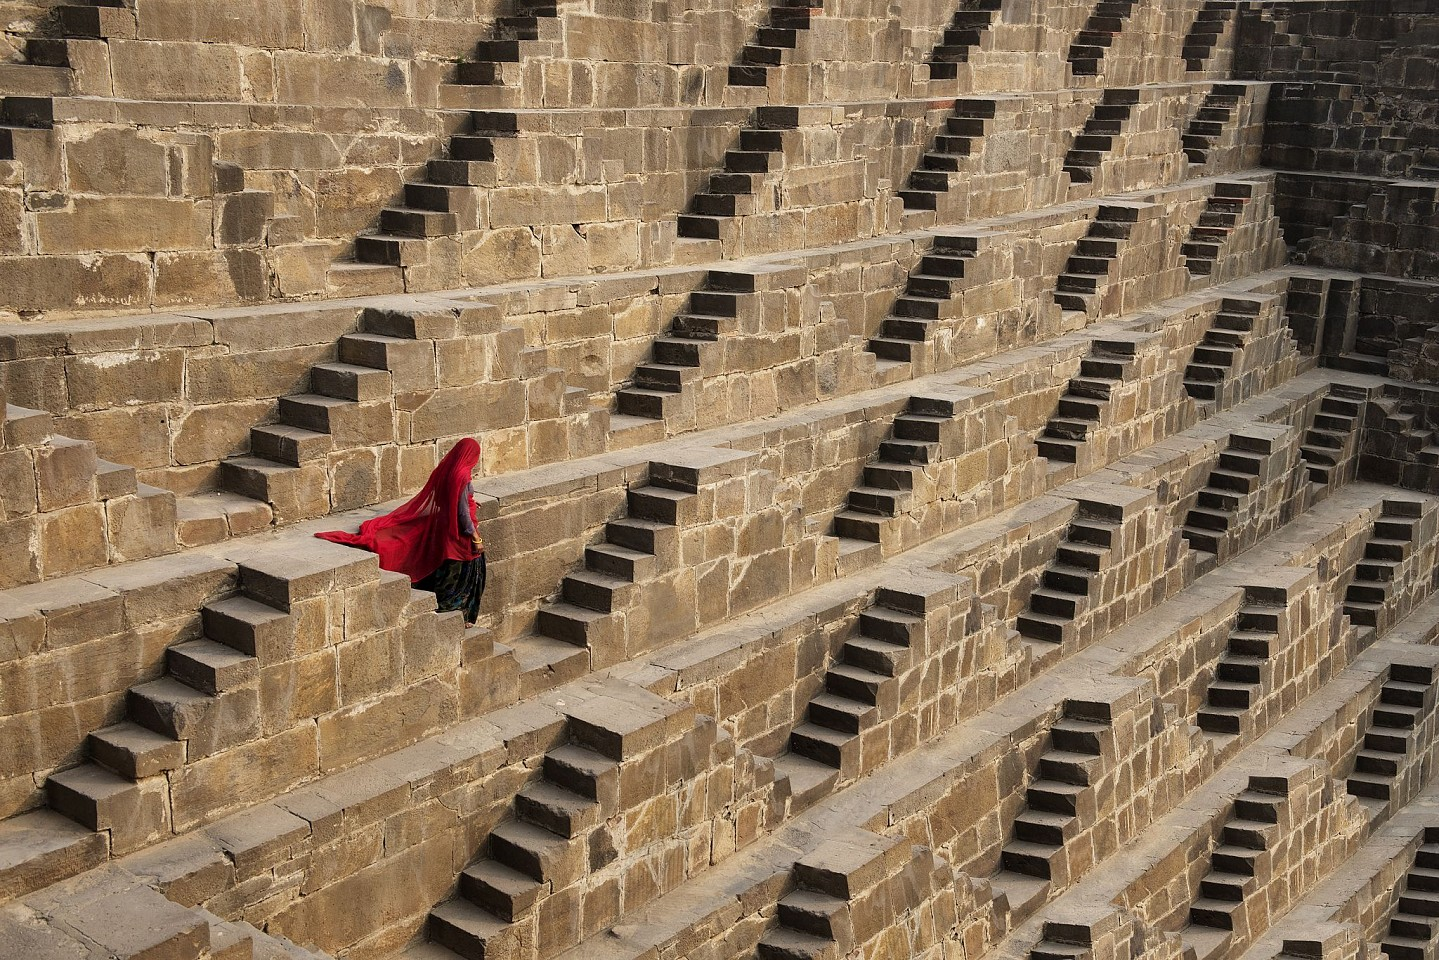 Steve McCurry ,   Woman in Chand Baori Stepwell, Abhaneri, India  ,  2016     FujiFlex Crystal Archive Print ,  30 x 40 in.     INDIA-13113